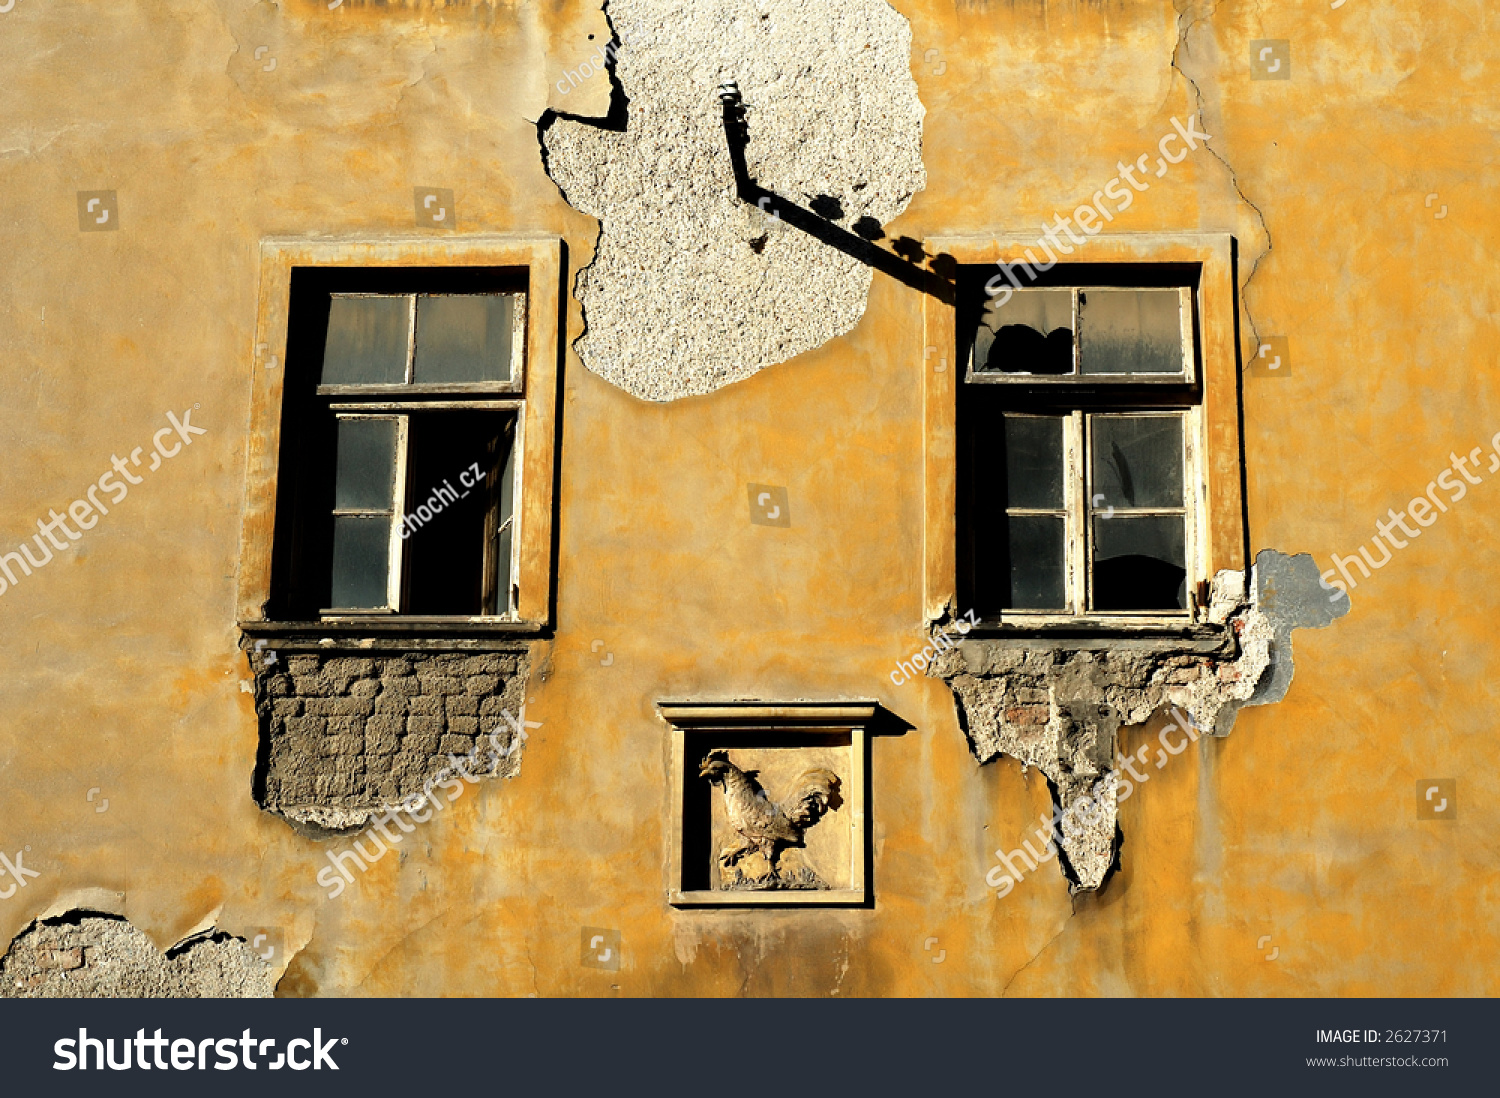 Old Building Two Broken Windows Plaster Stock Photo (Royalty Free ...